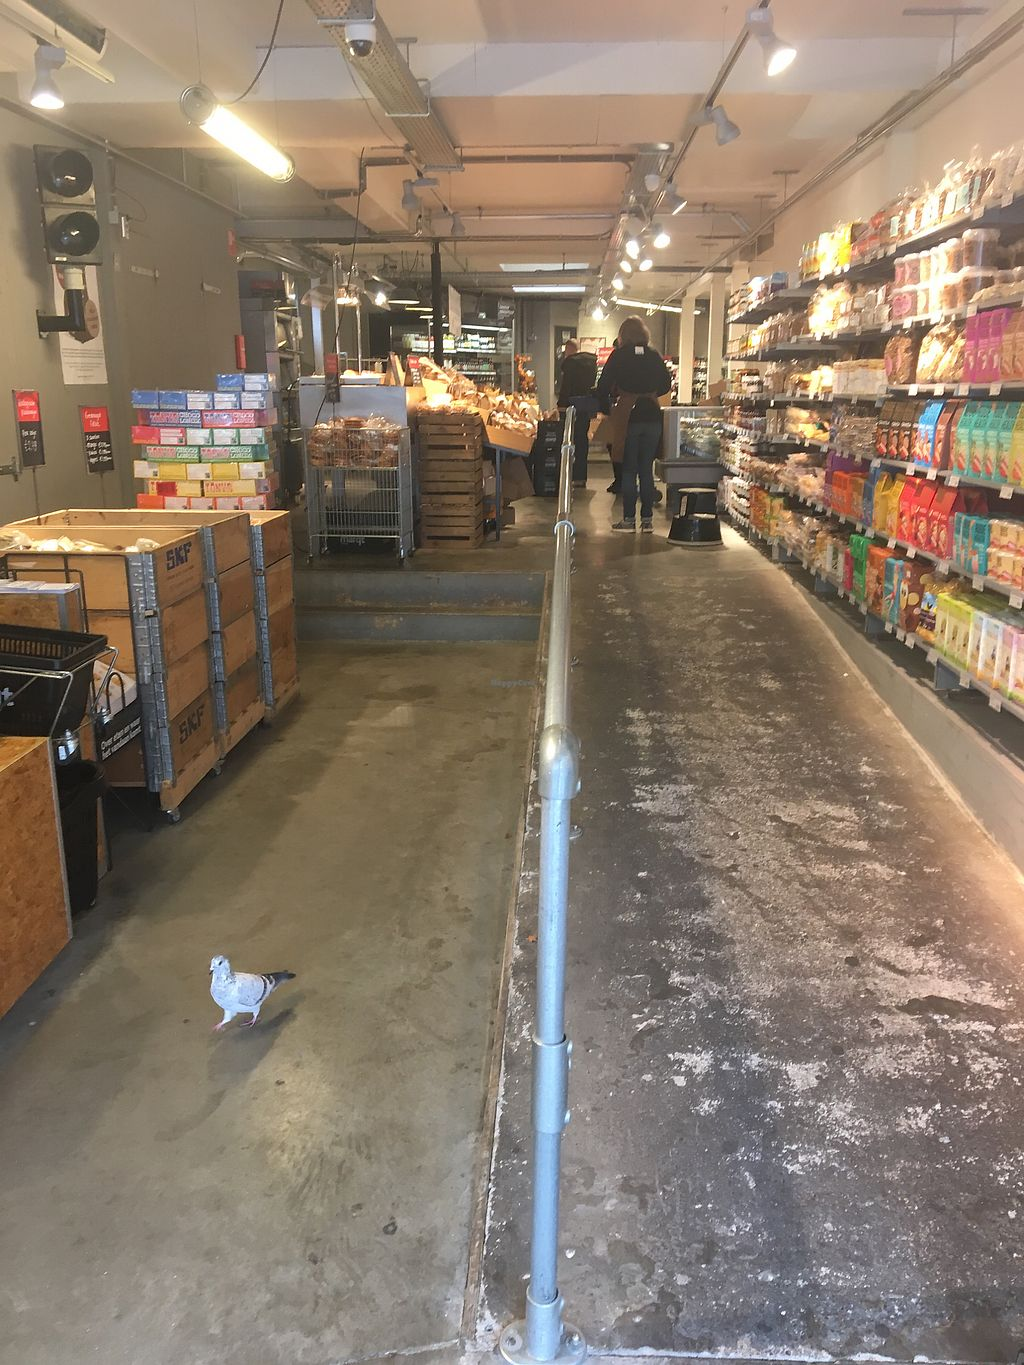 """Photo of Marqt Bergse Dorpsstraat  by <a href=""""/members/profile/Marianne1967"""">Marianne1967</a> <br/>Front entrance, pigeon was just leaving? <br/> March 24, 2018  - <a href='/contact/abuse/image/39134/375191'>Report</a>"""